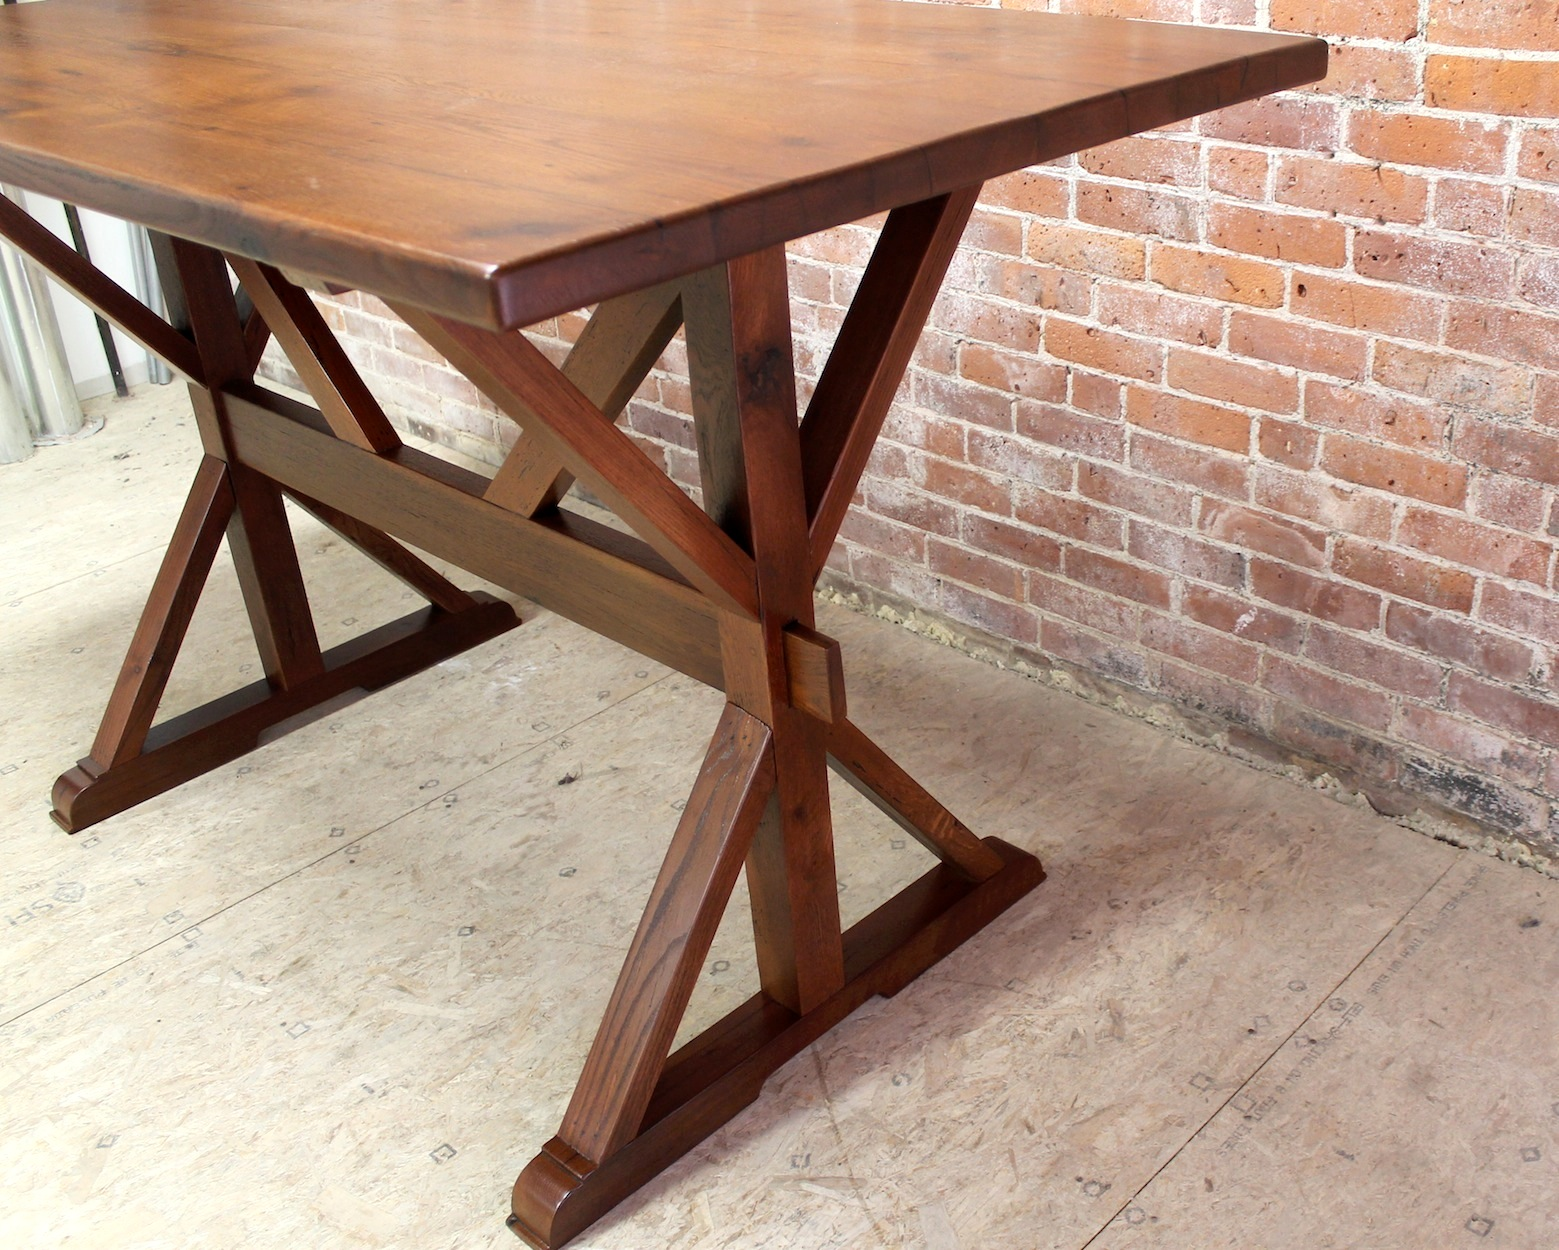 Kitchen Island Drop Leaf 42 Bar Height Oak Trestle Table - Ecustomfinishes